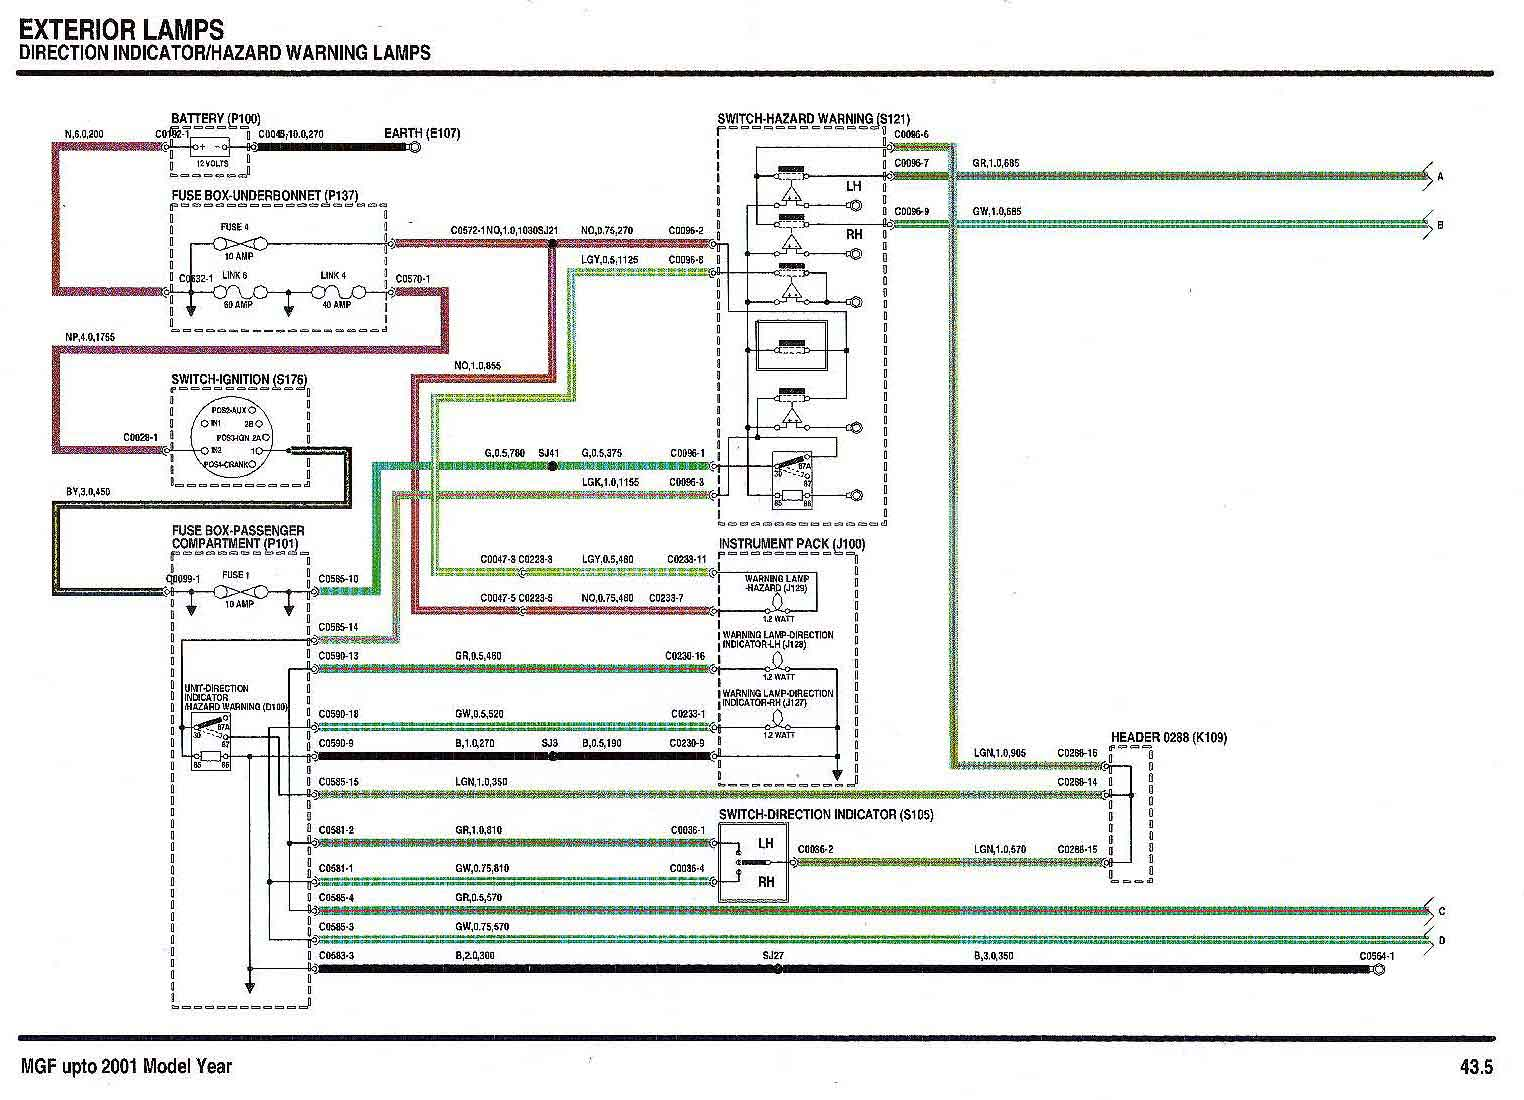 Electrical Circuits Main Fuse Box Wiring Diagram Direction And Hazard Lamps Sheet 1